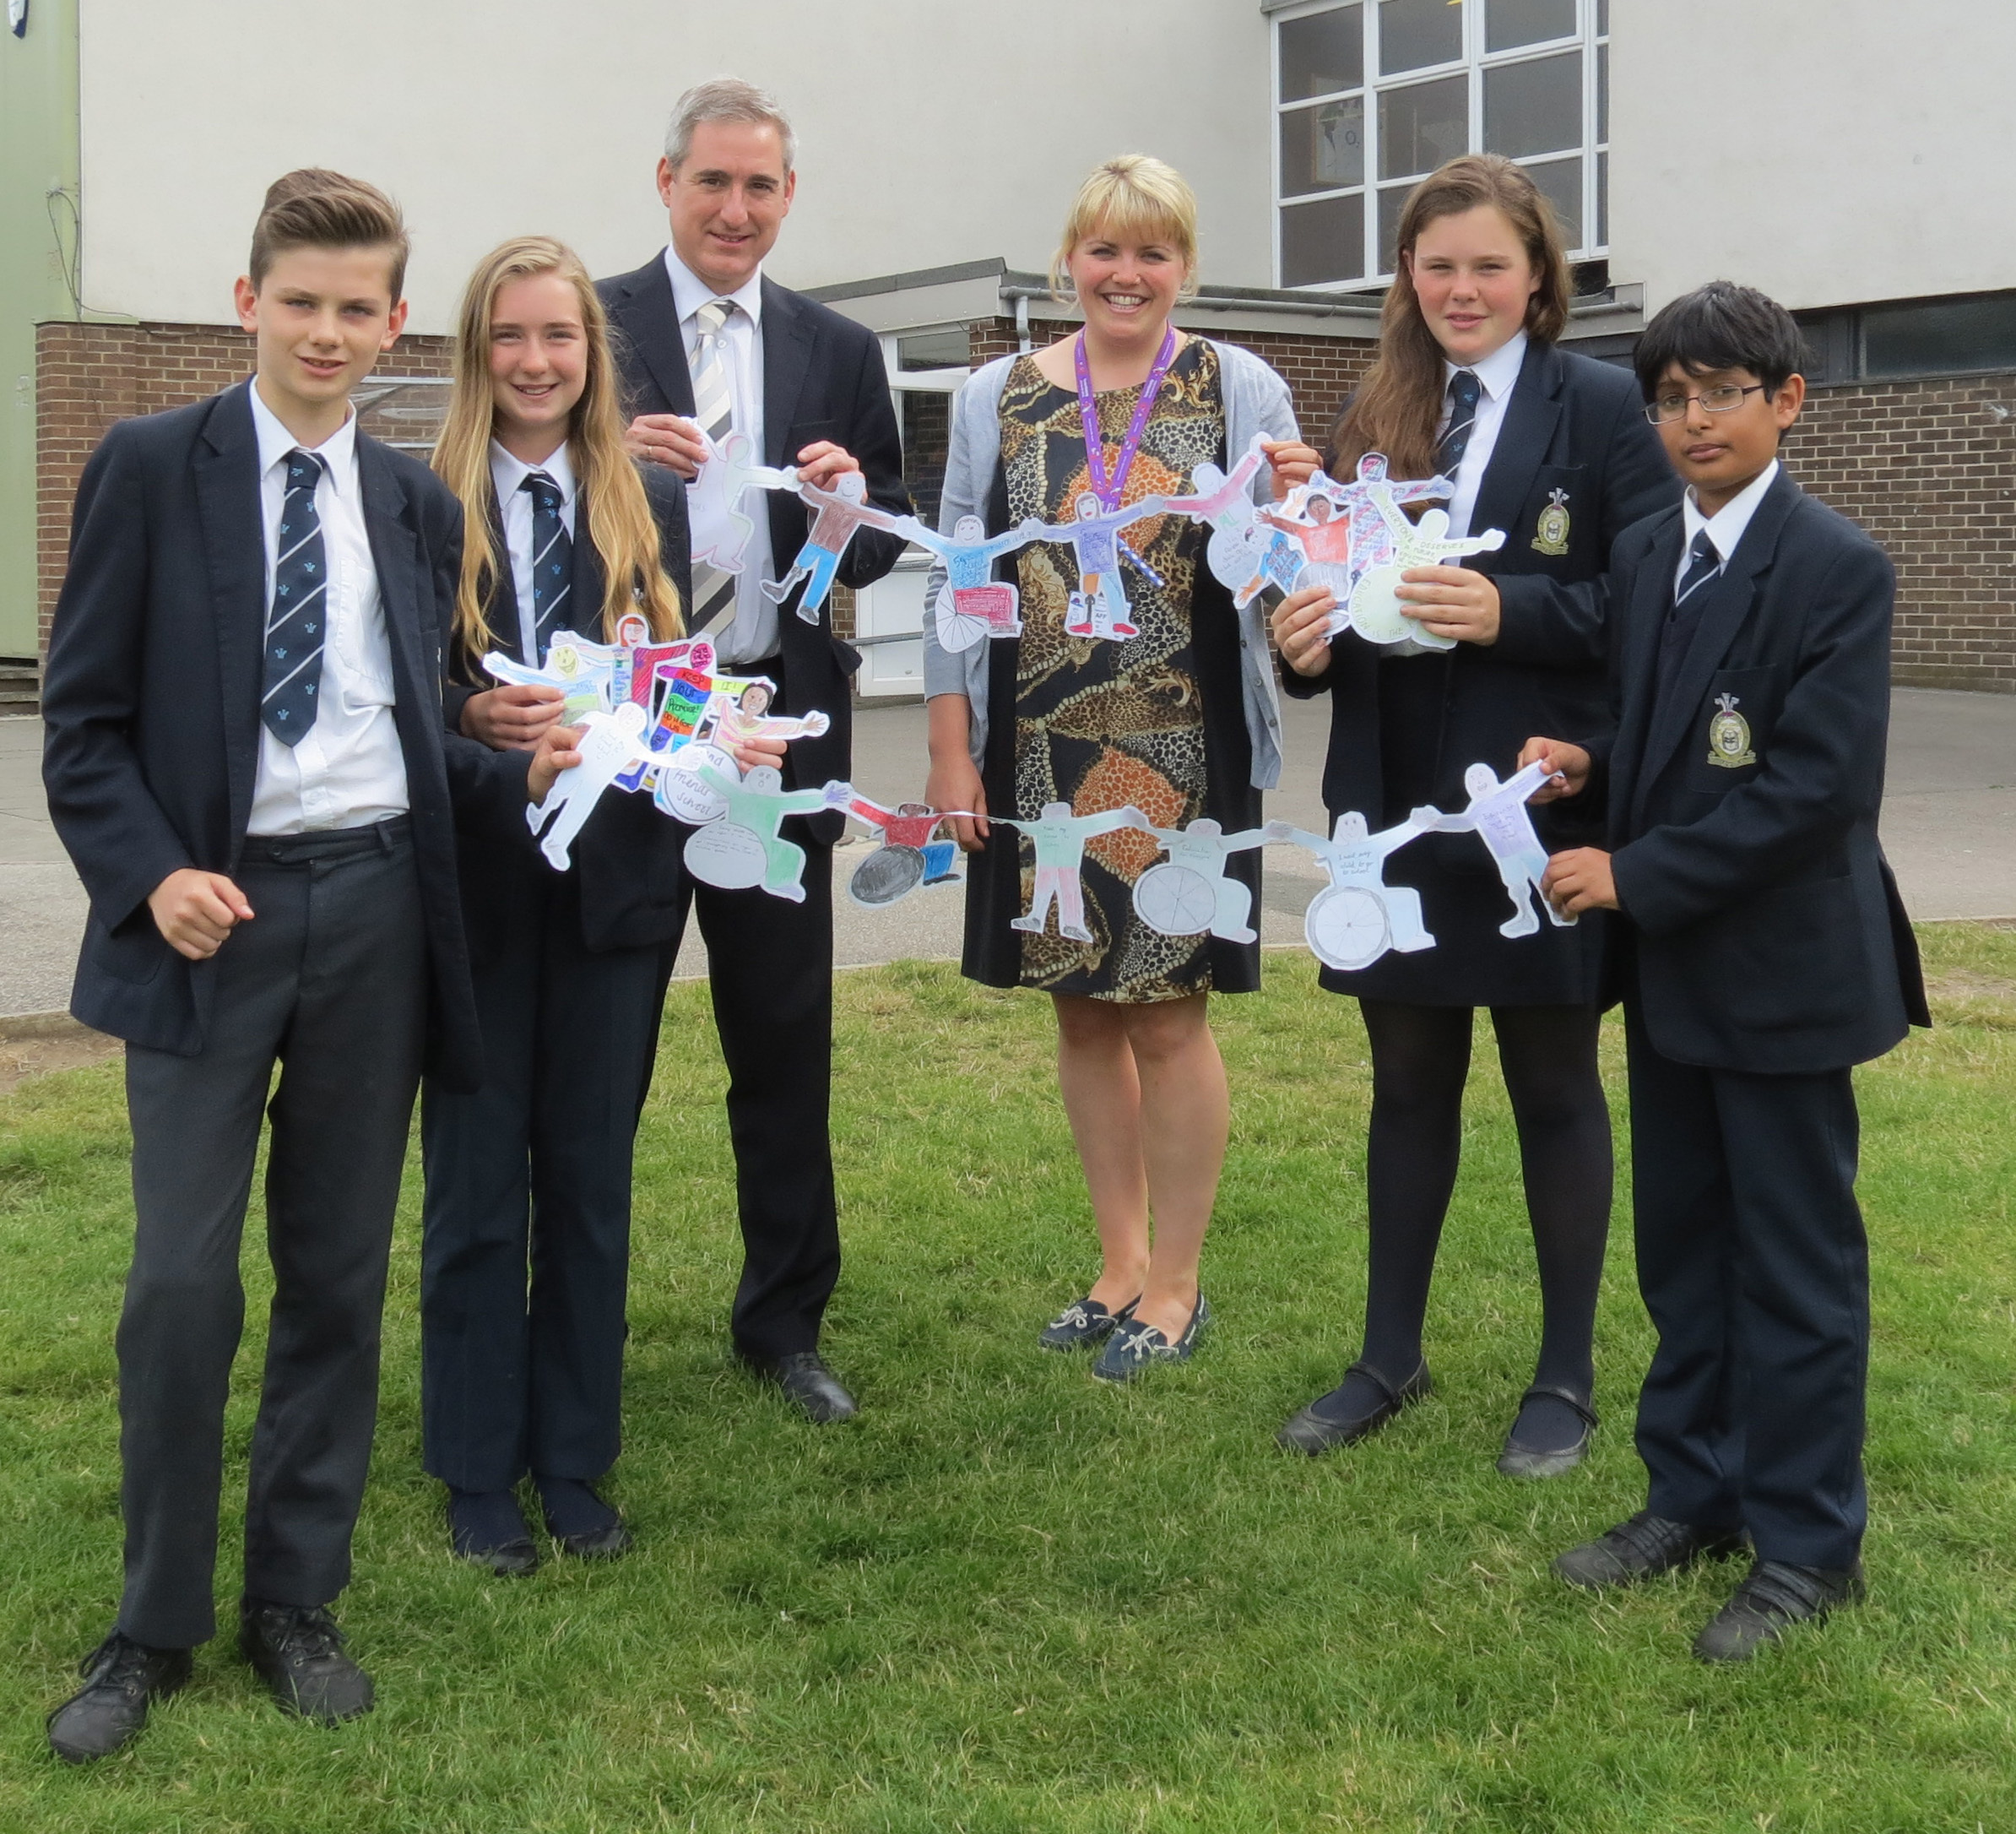 (L to R): Showing their support for the Send My Friend to School campaign at Prince Henry's Grammar School - Tom Winter, Laura McPherson, Greg Mulholland MP,